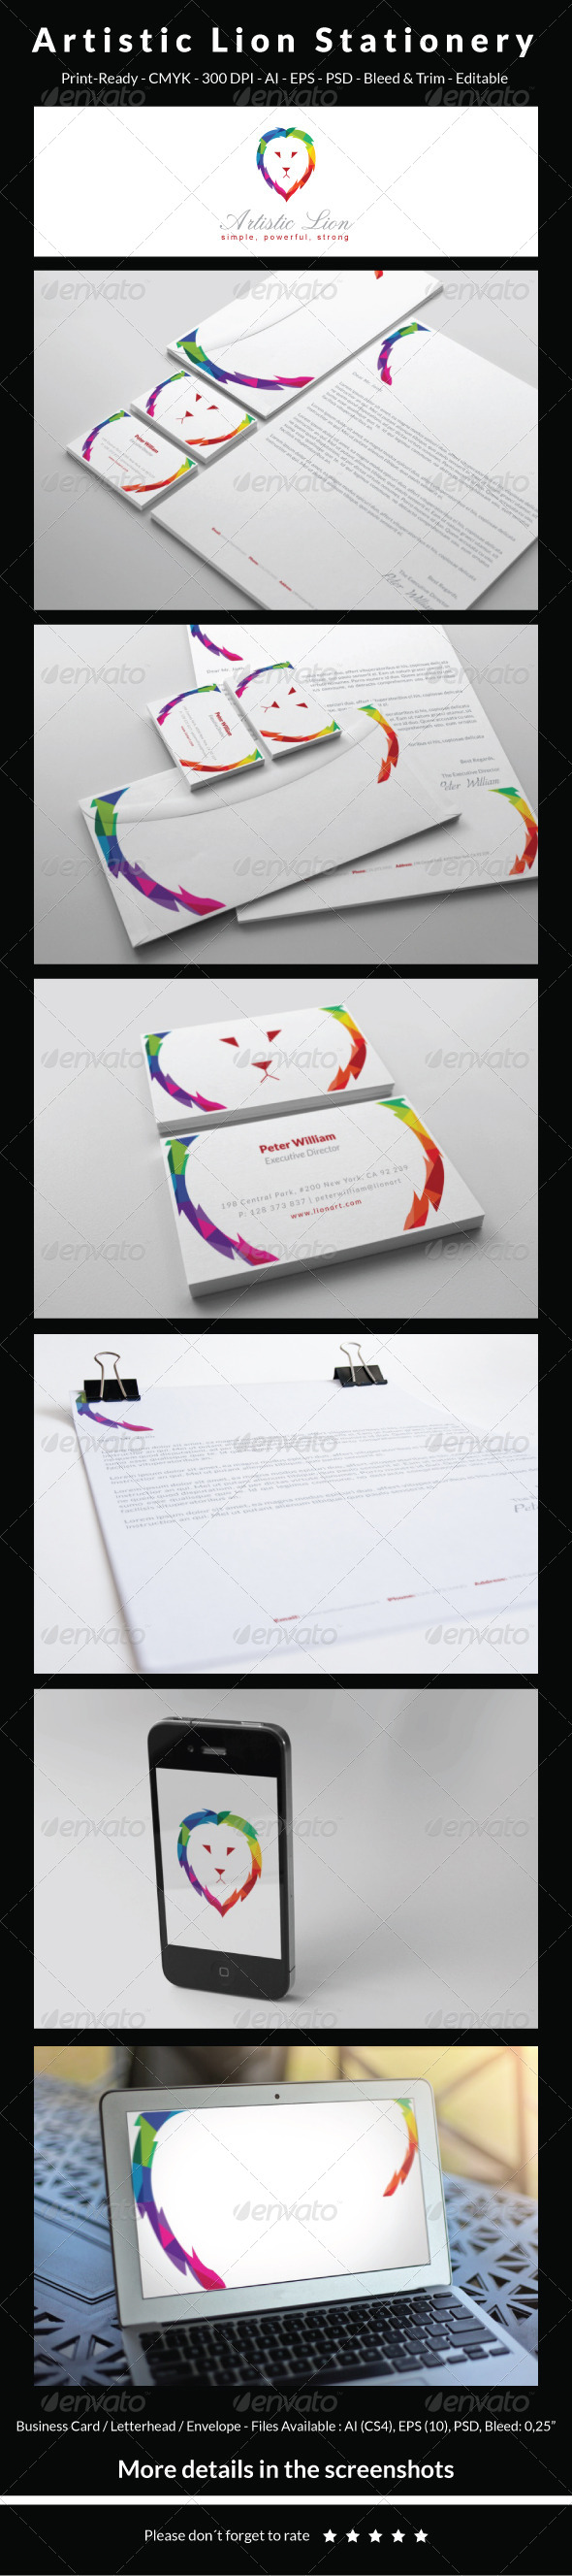 GraphicRiver Artistic Lion Stationery 5440909